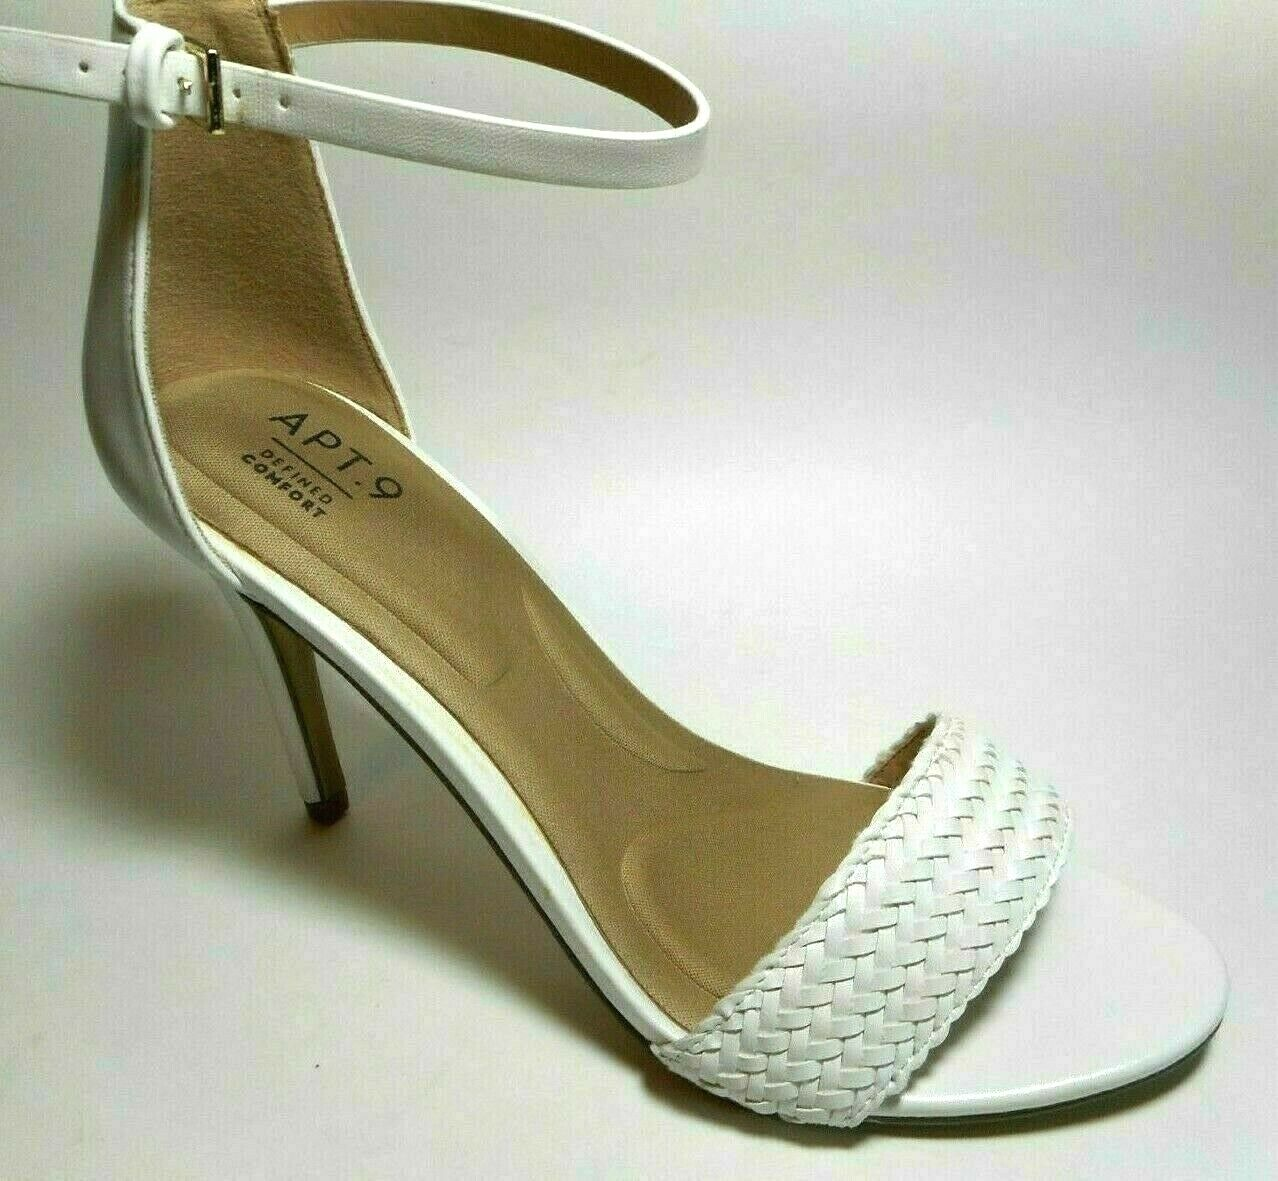 BRAND NEW APT 9 Comfort Size 9.5M White Woven Ankle Strap Heel Sandal Shoes